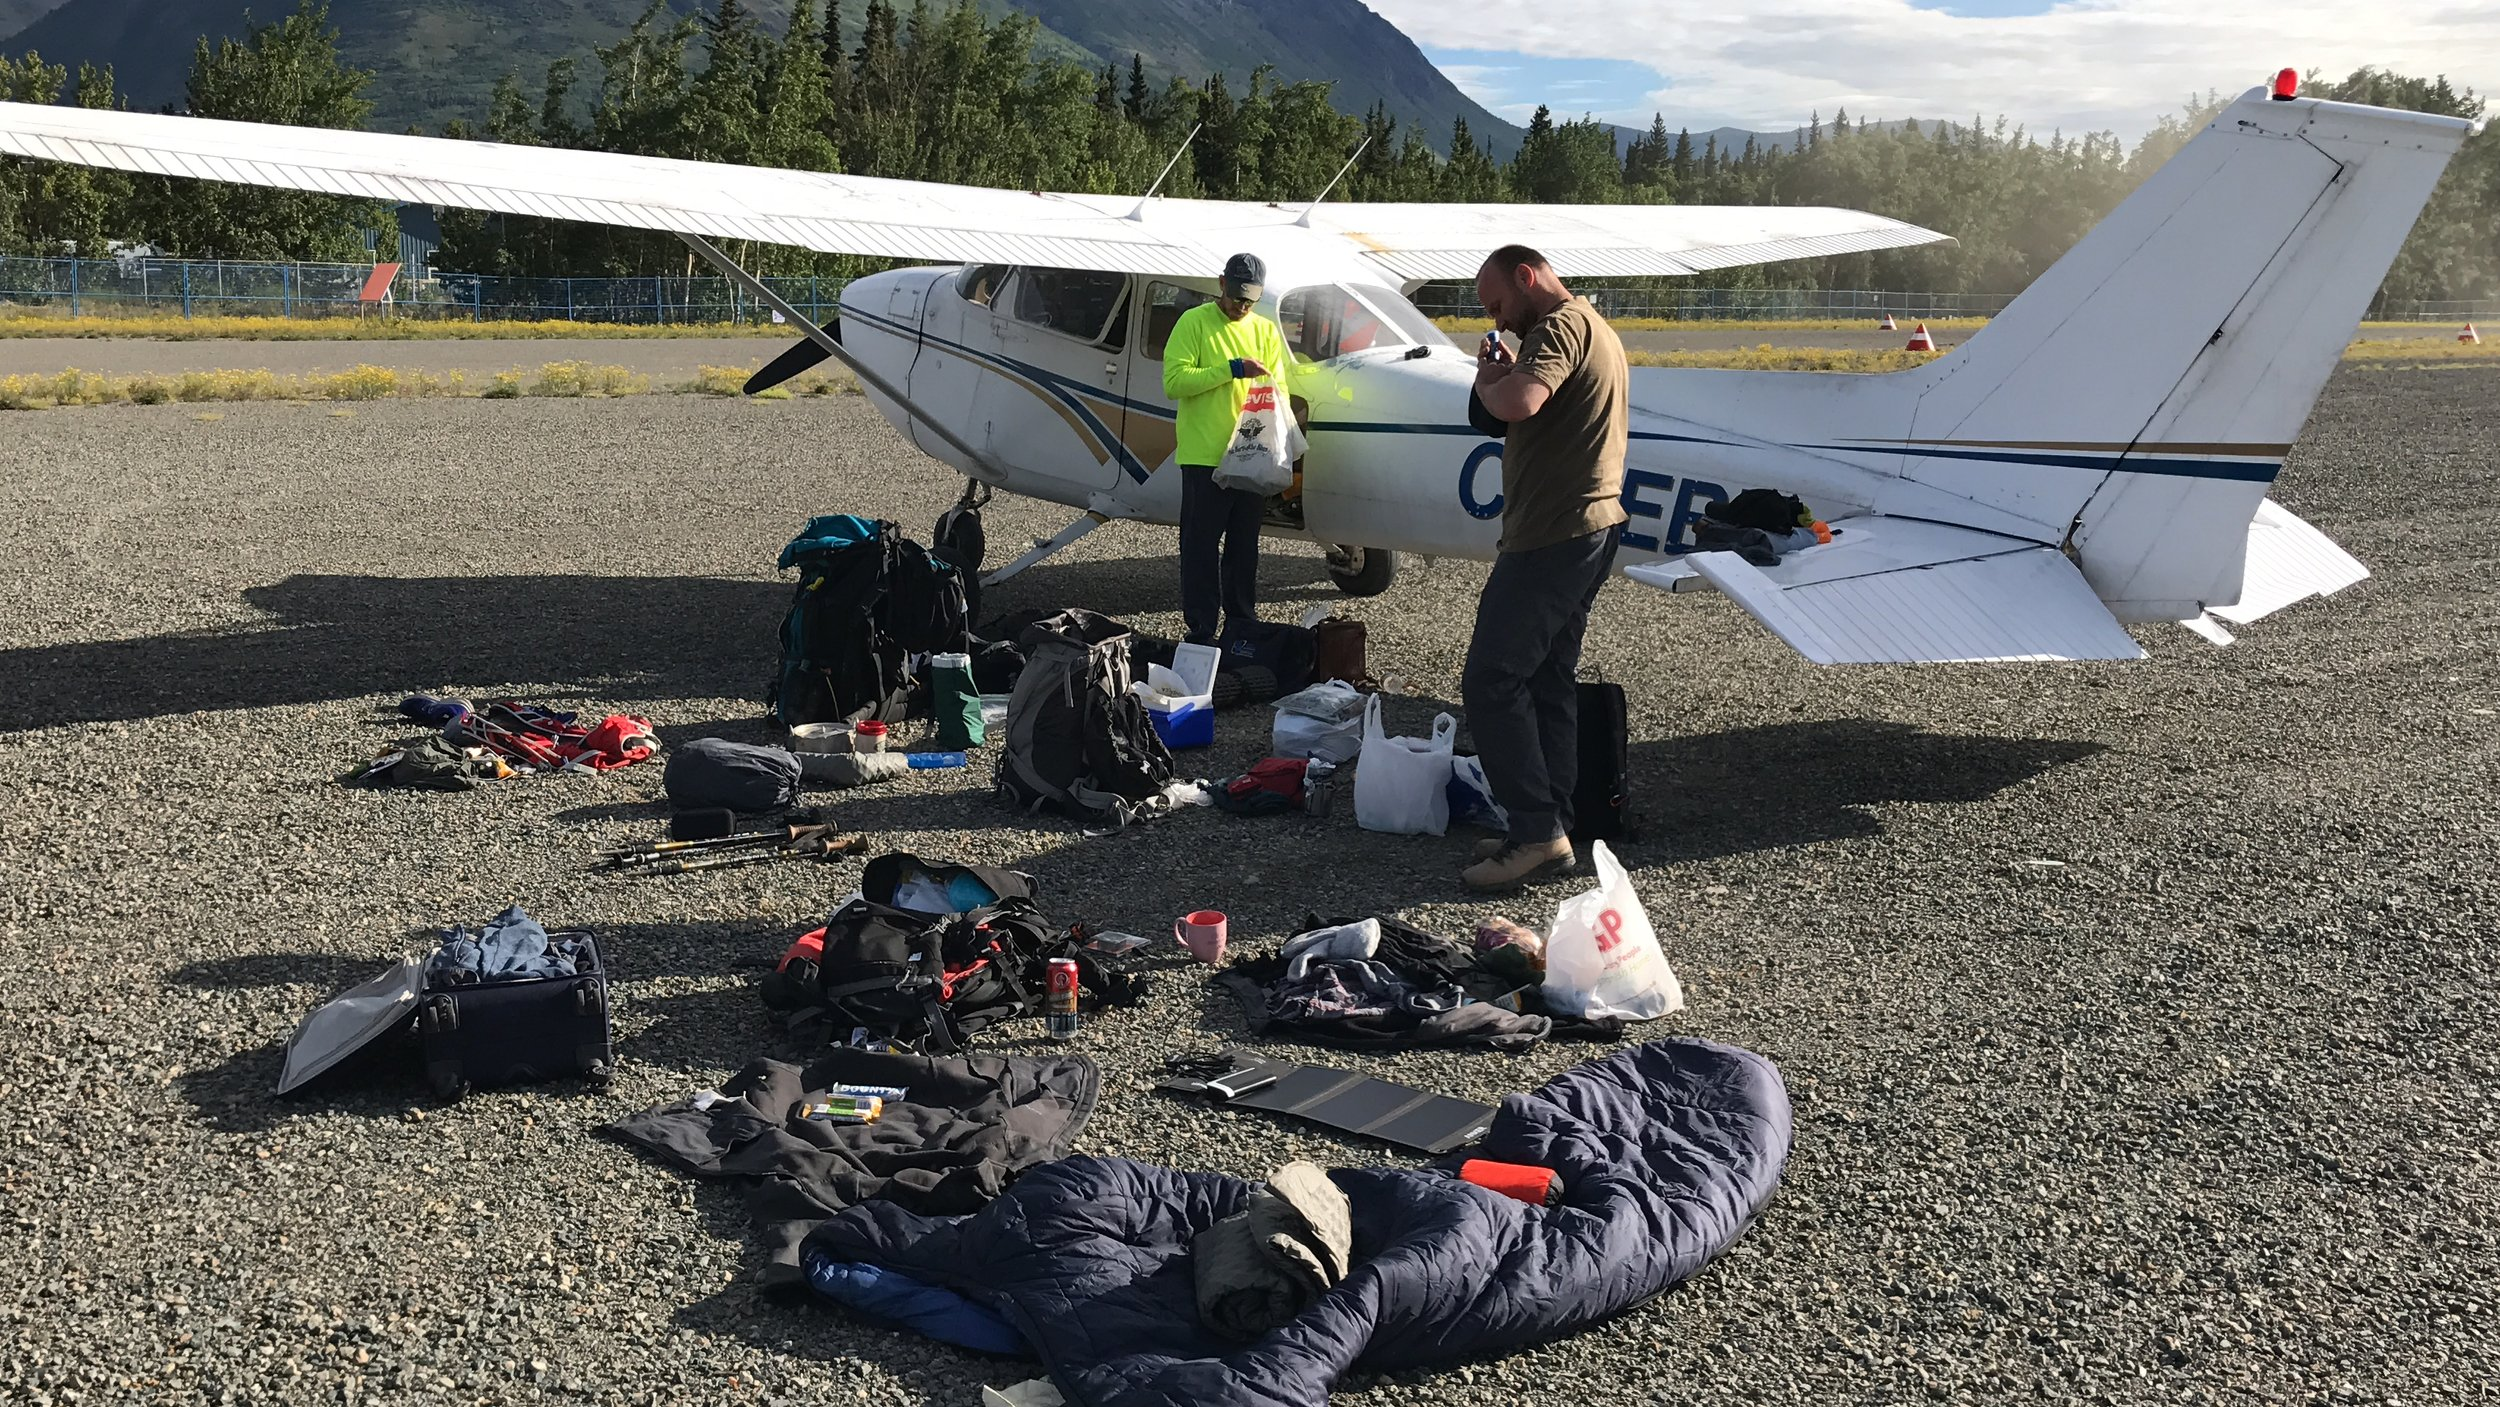 Getting ready for the Chilkoot trail